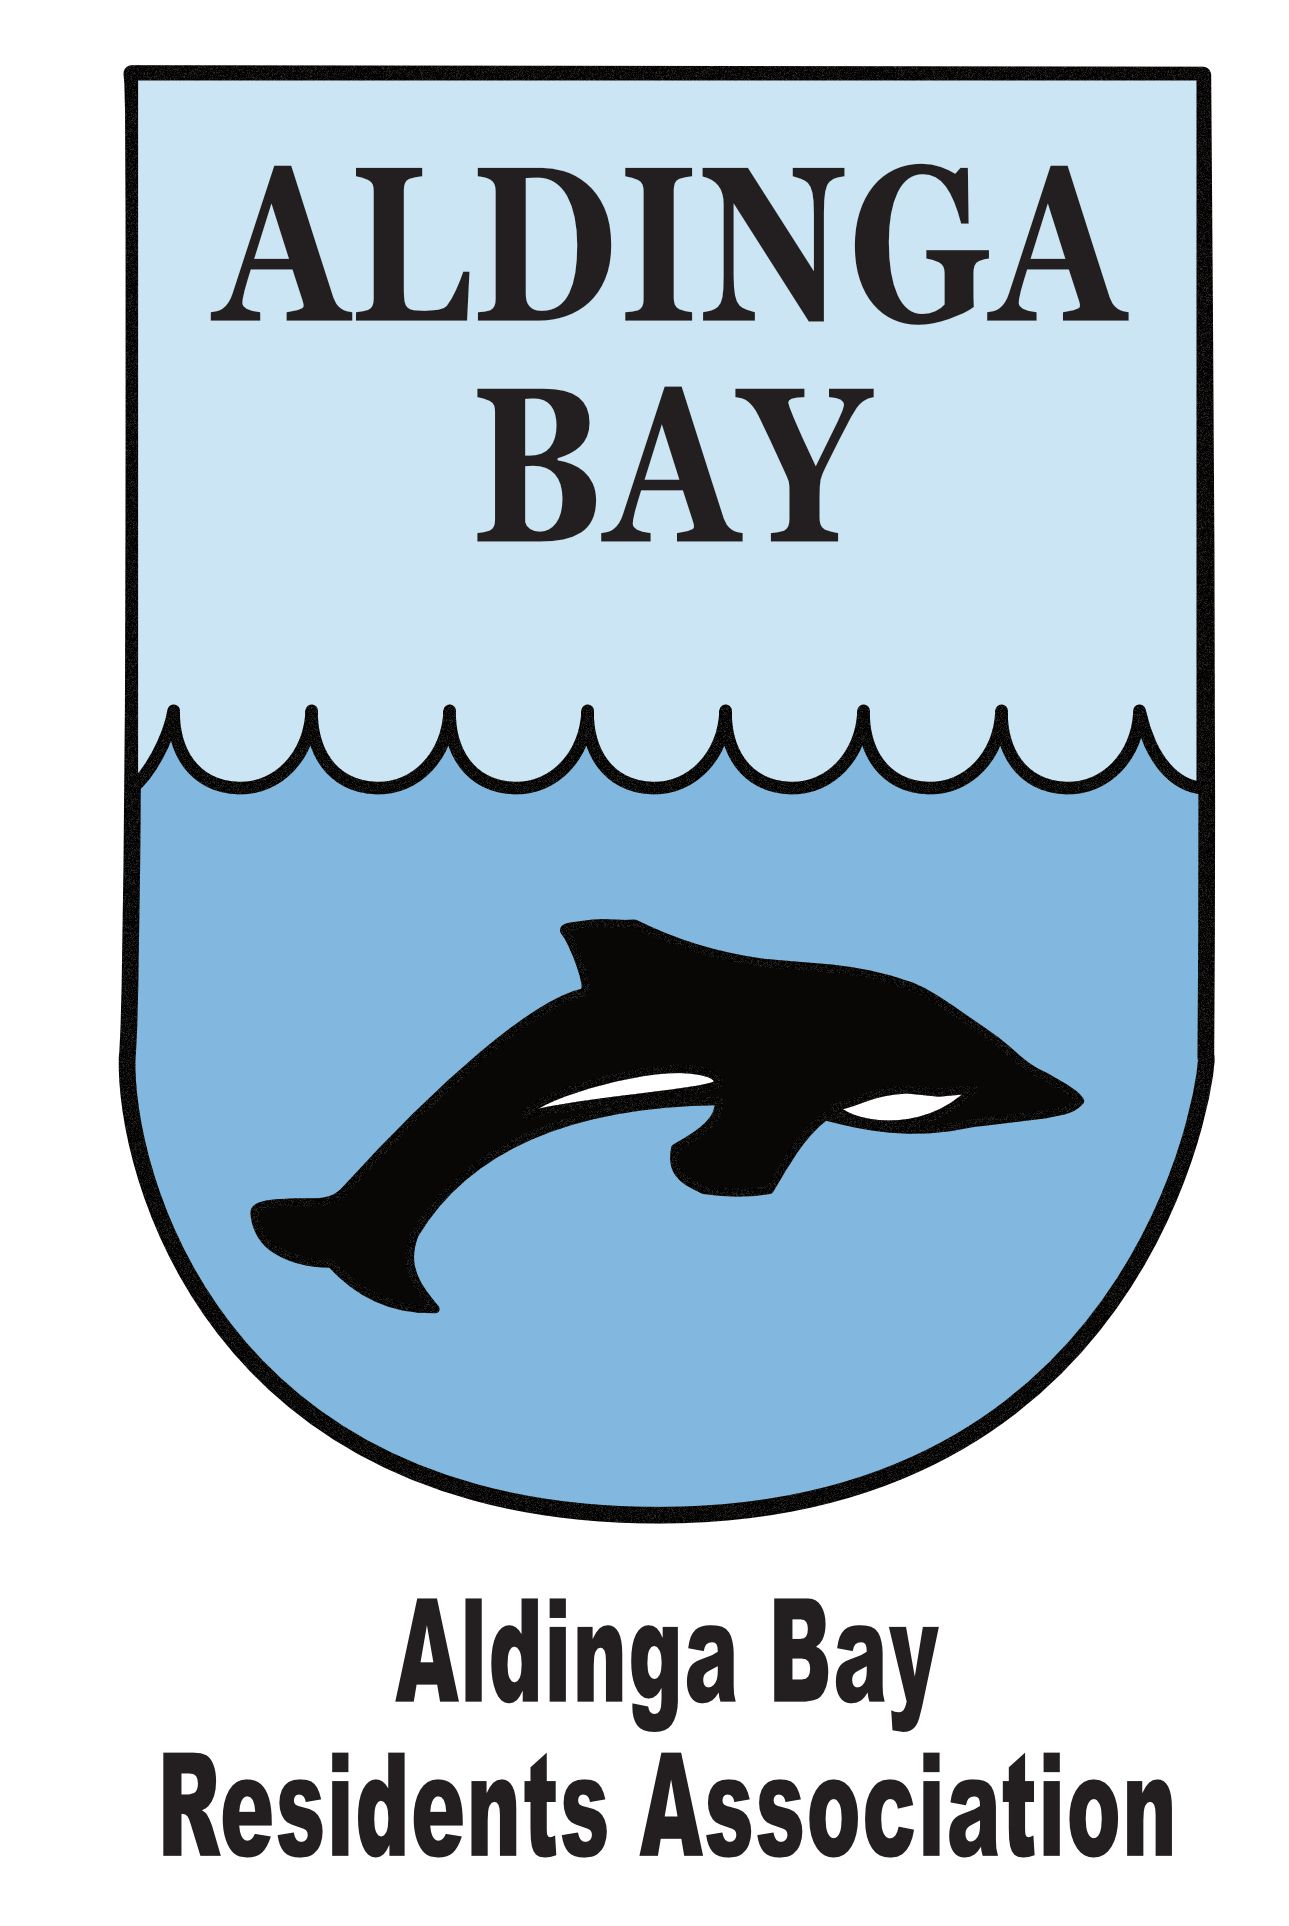 Aldinga Bay Residents Association